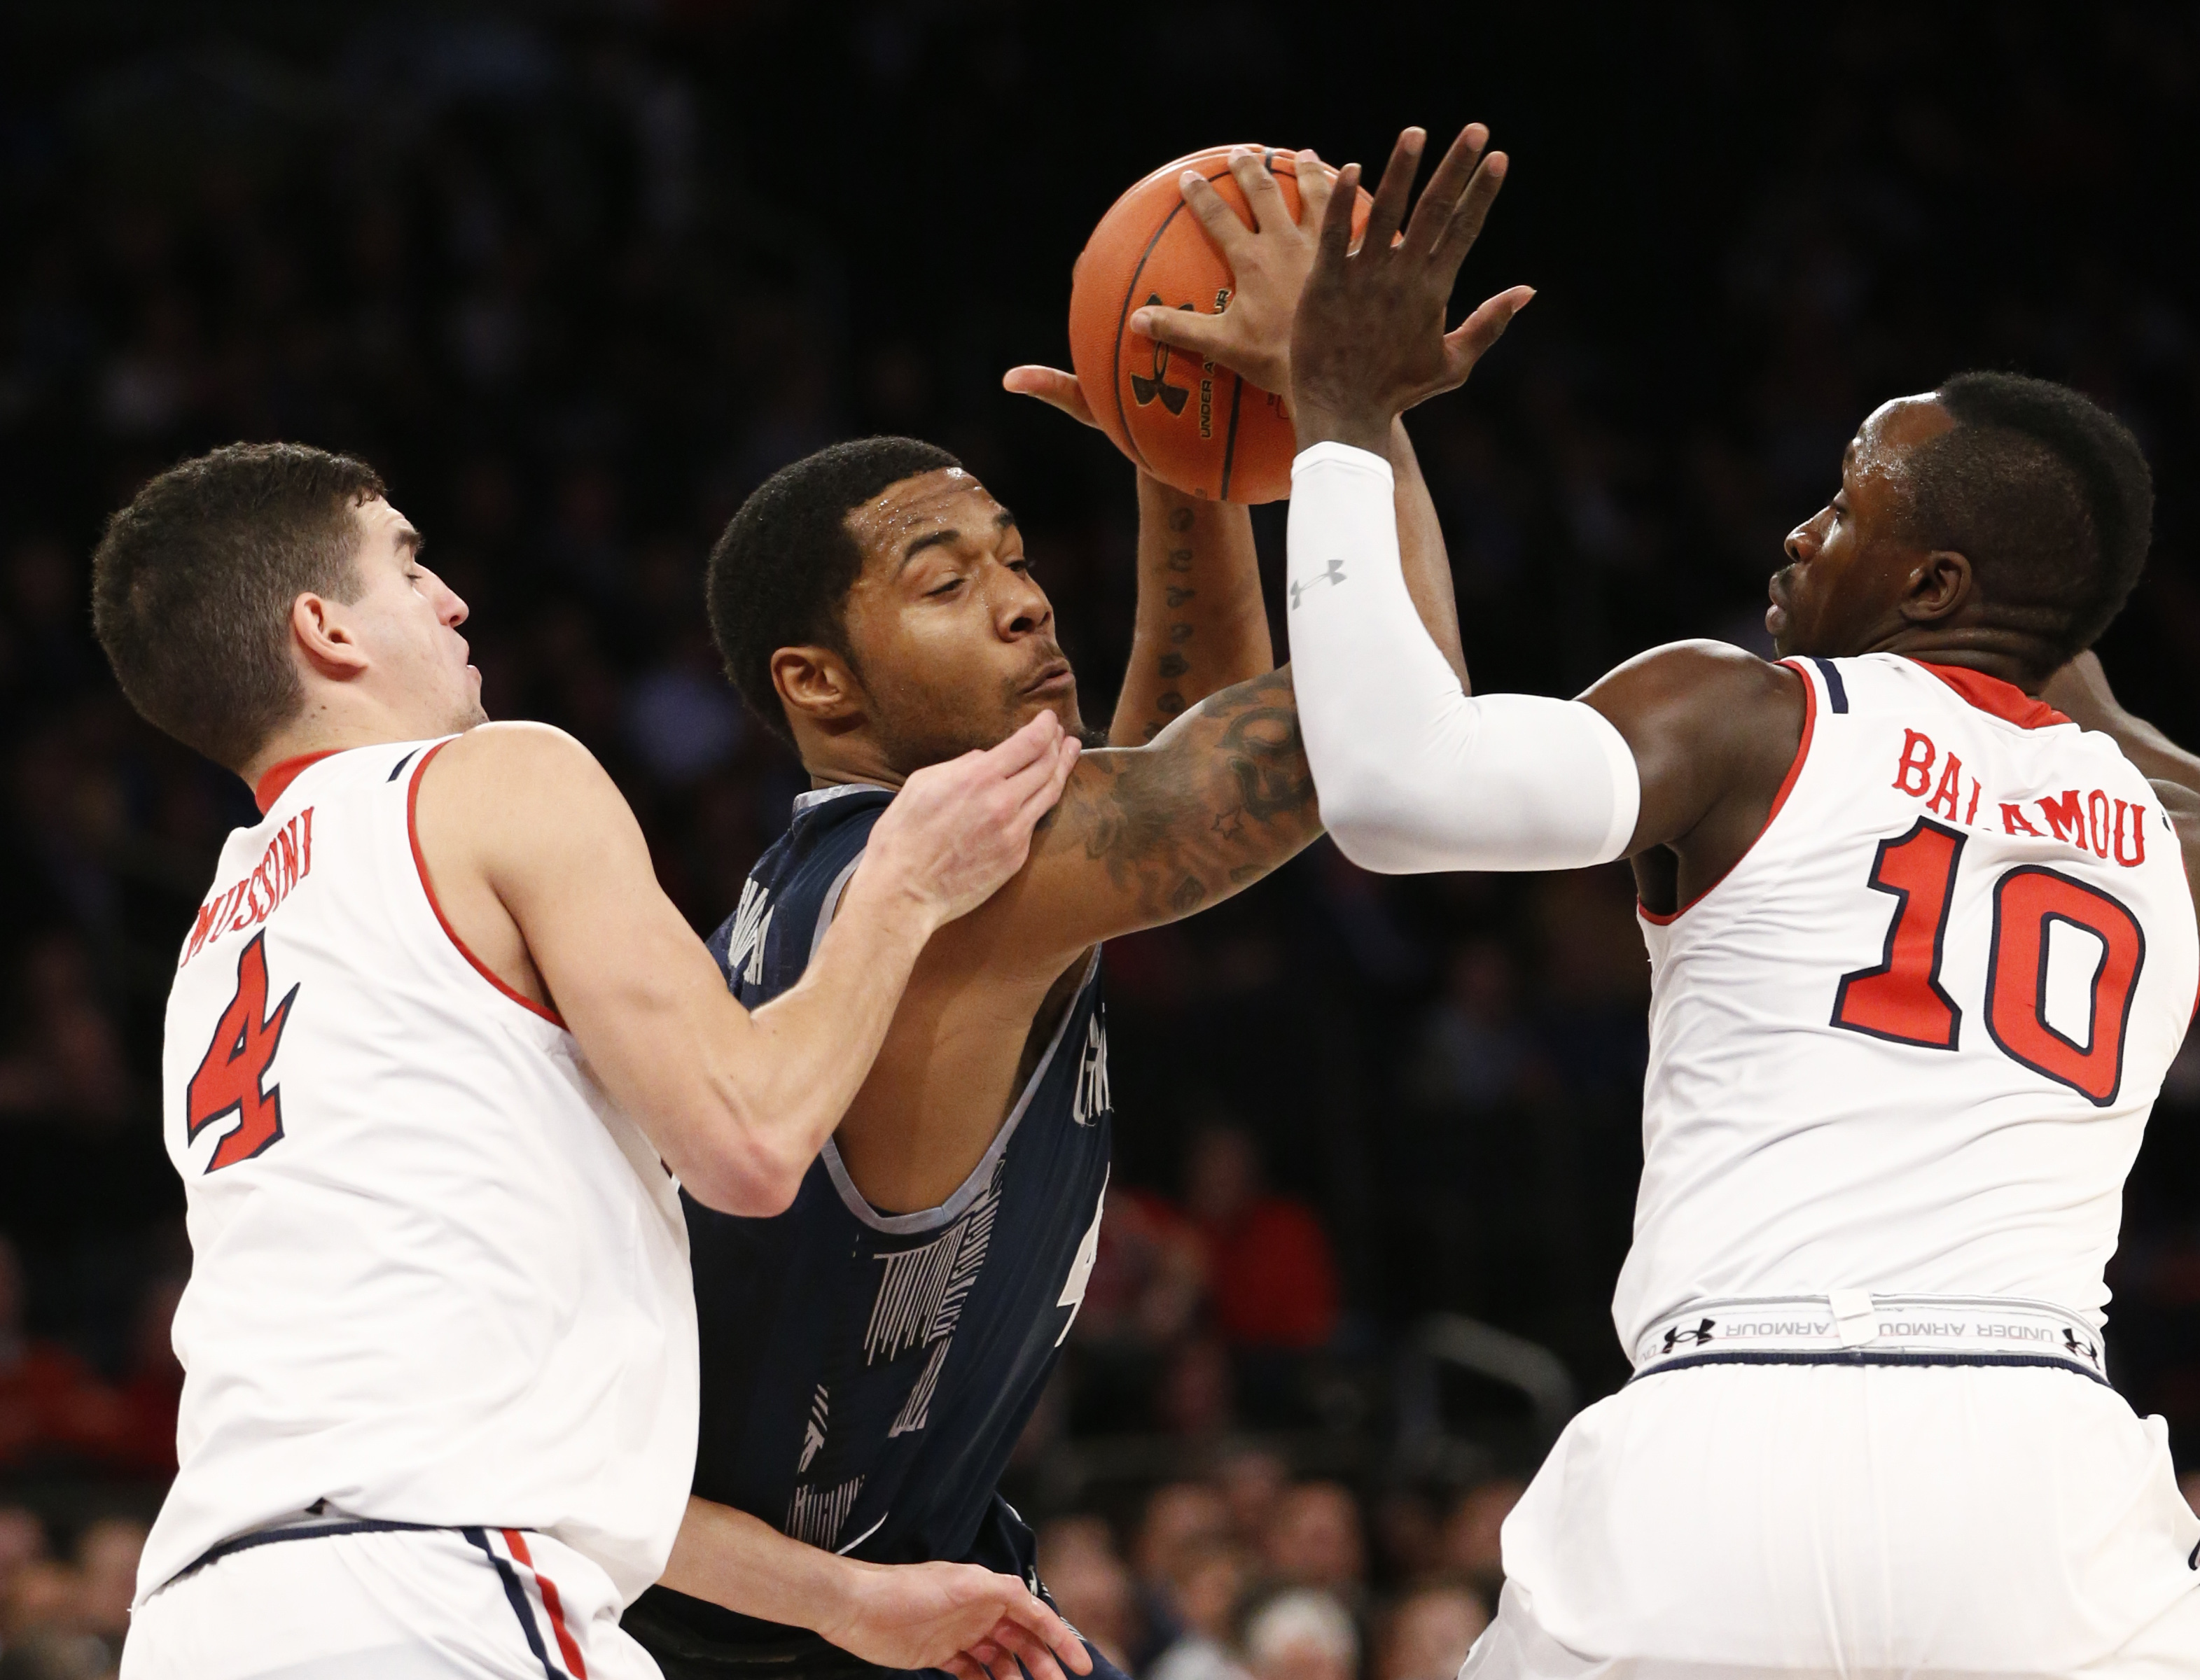 St. John's guard Federico Mussini (4) and Felix Balamou (10) defend Georgetown guard D'Vauntes Smith-Rivera in the first half of an NCAA college basketball game at Madison Square Garden in New York, Wednesday, Jan. 13, 2016. (AP Photo/Kathy Willens)